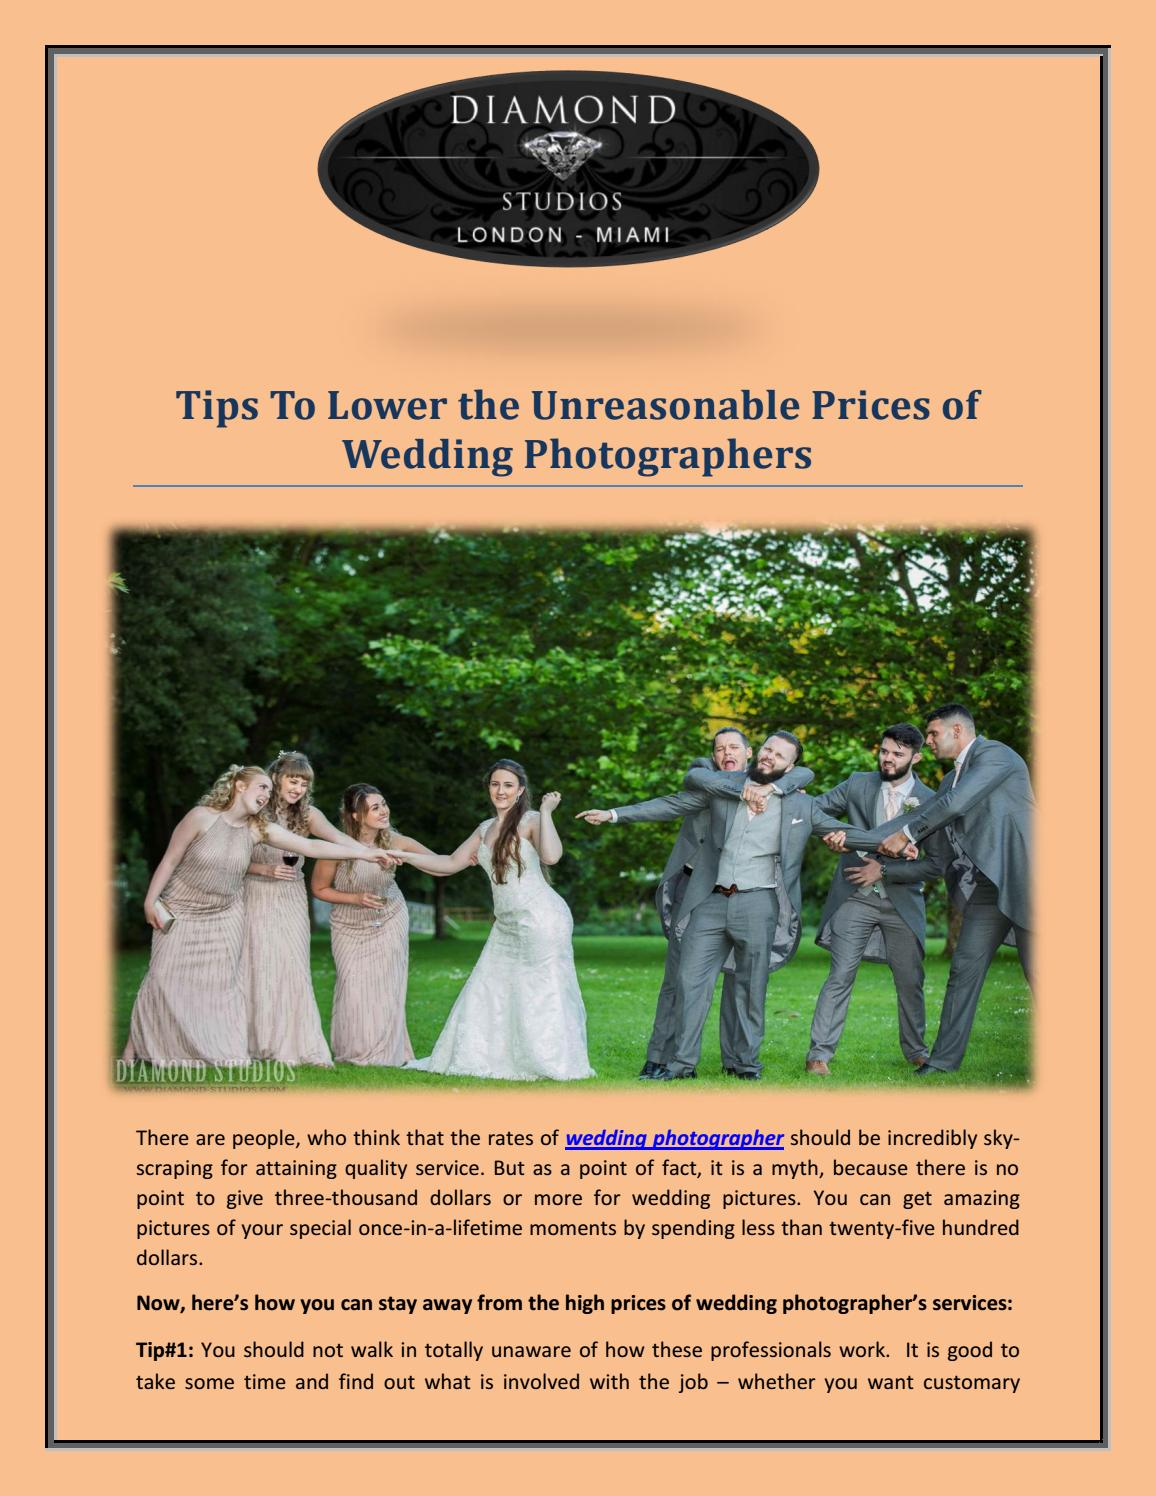 Tips To Lower the Unreasonable Prices of Wedding